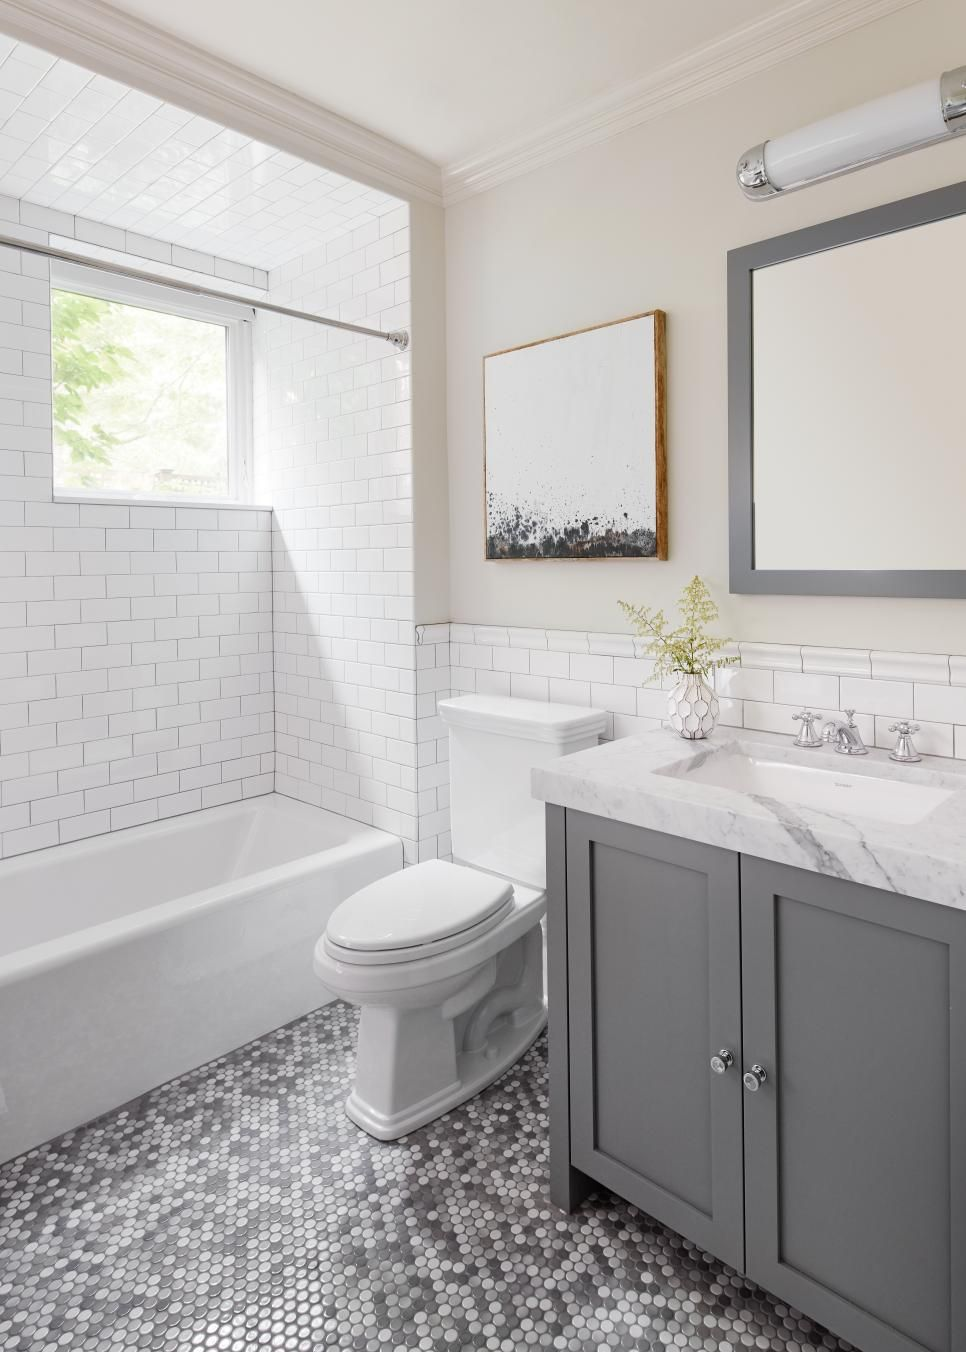 How Much Budget Bathroom Remodel You Need  Hgtv Living Spaces Amazing Average Cost Of Remodeling Bathroom Decorating Design